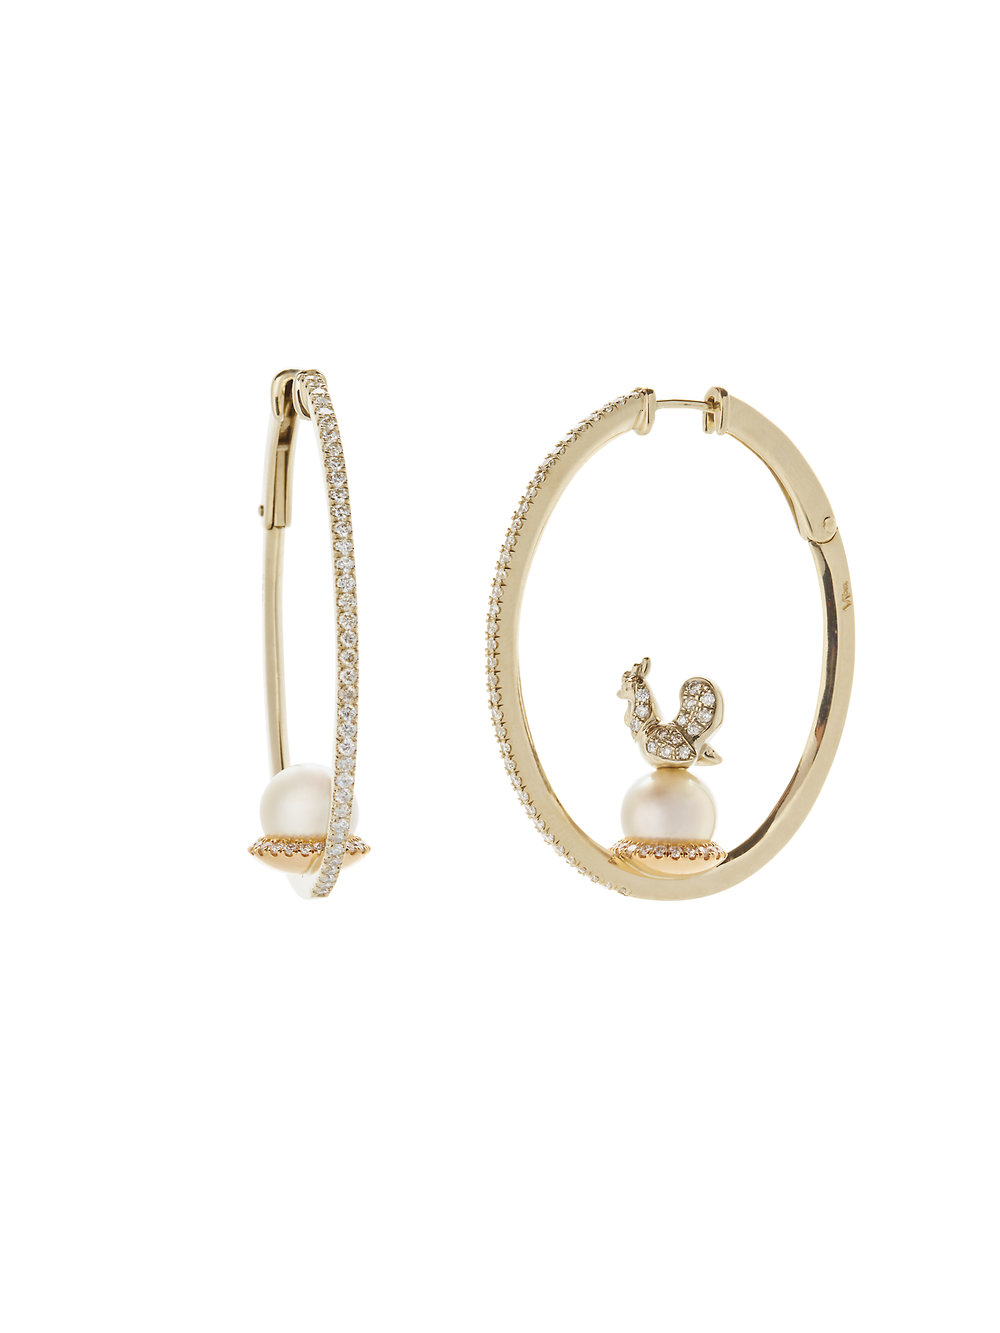 PEARL HOOP WITH ROOSTER    18 K GOLD SOUTH SEA PEARLS .48 CT OF DIAMONDS